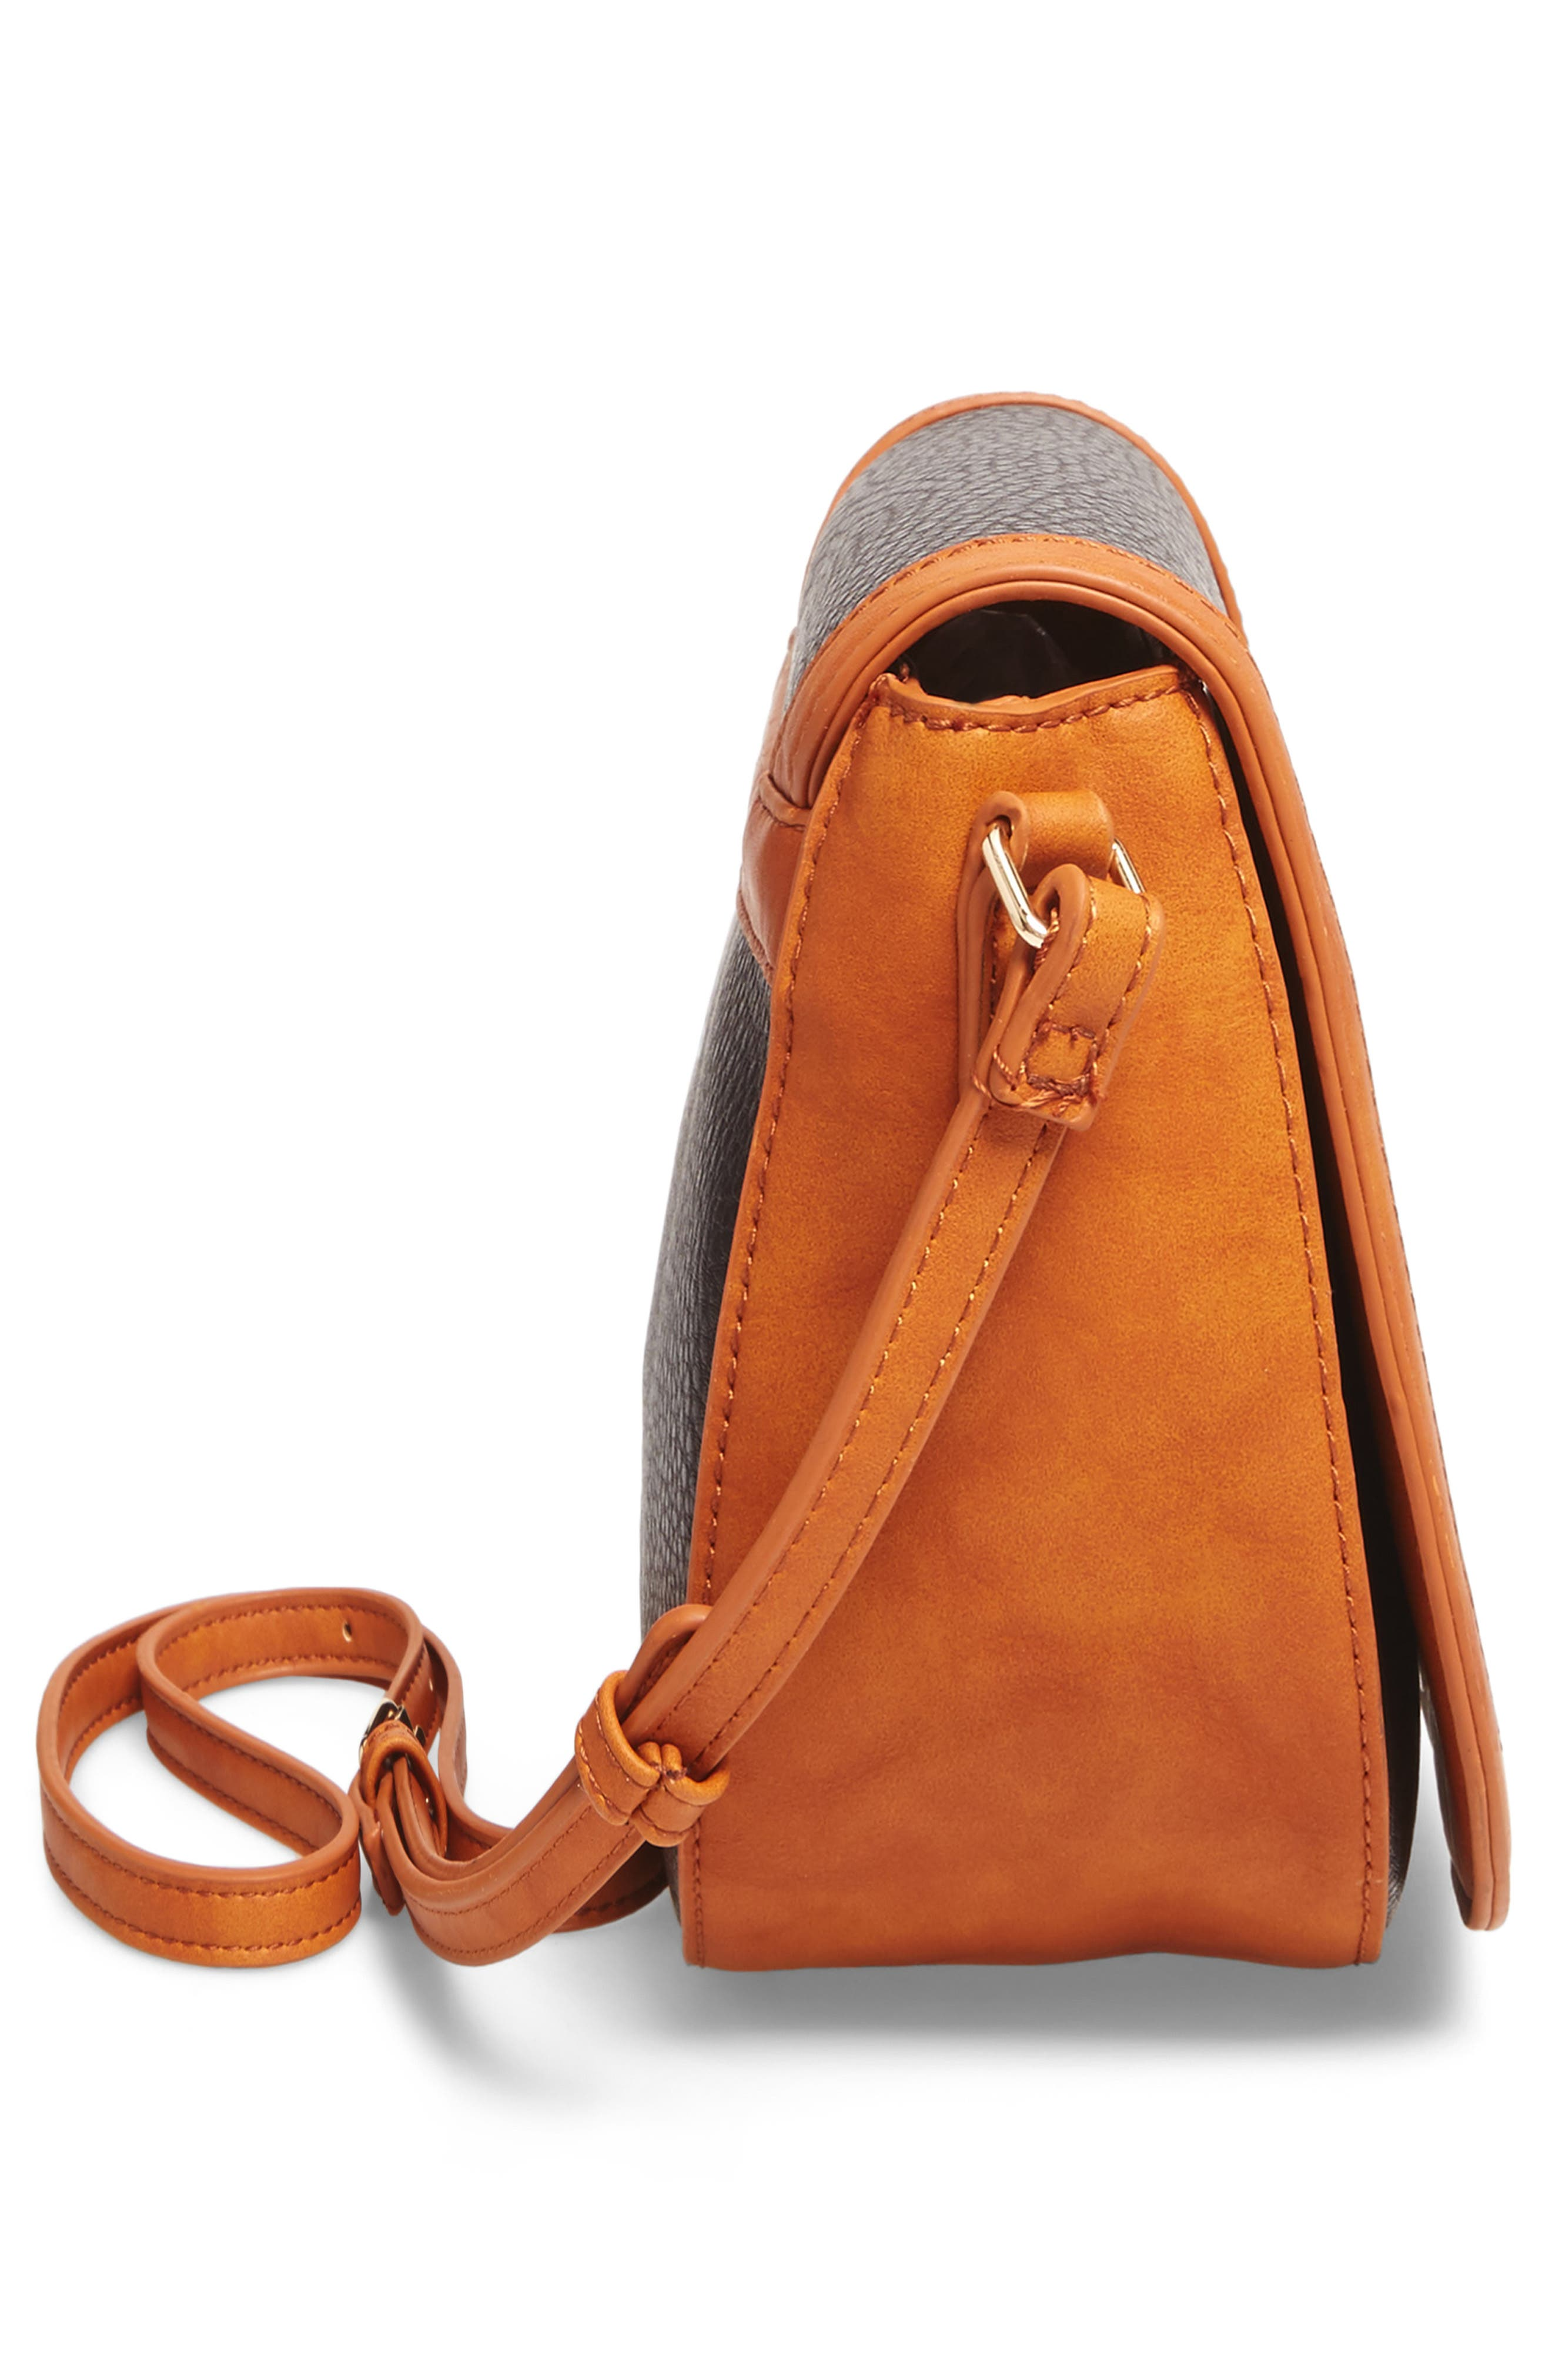 Finnigan Faux Leather Crossbody Bag,                             Alternate thumbnail 5, color,                             001